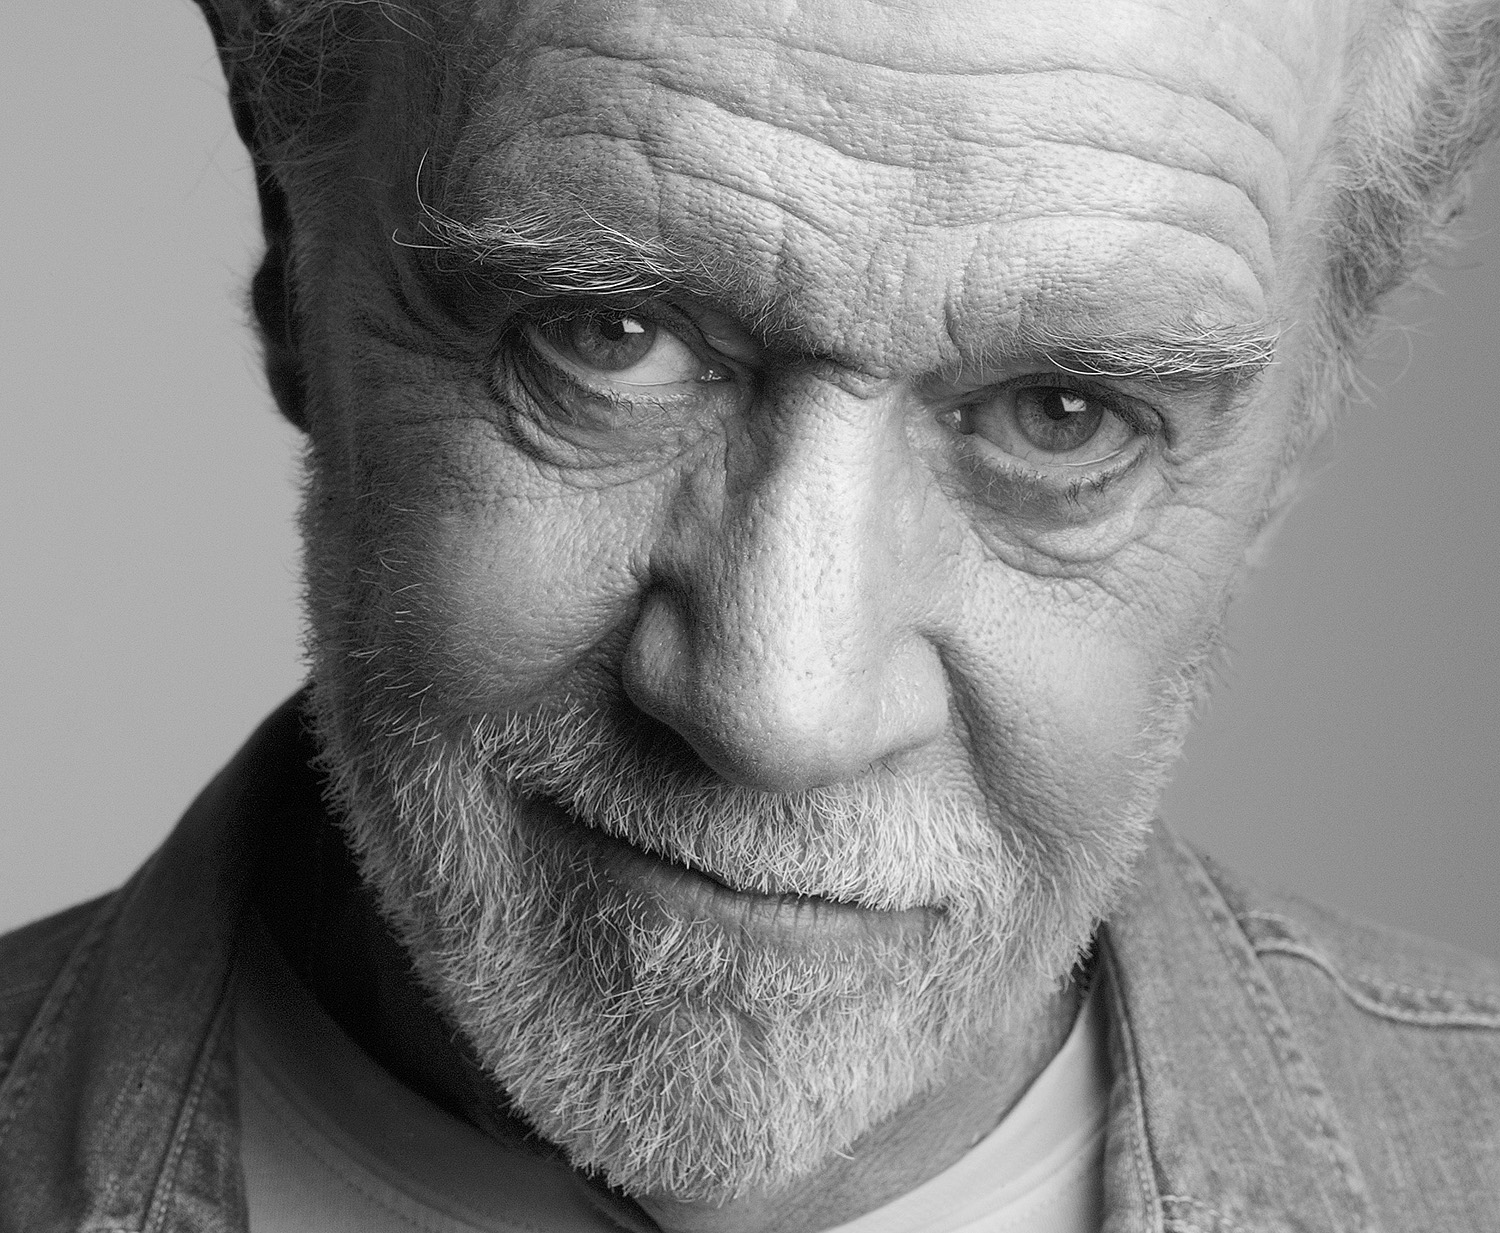 25 Quotes By George Carlin That Are Both Sarcastic And Philosophical